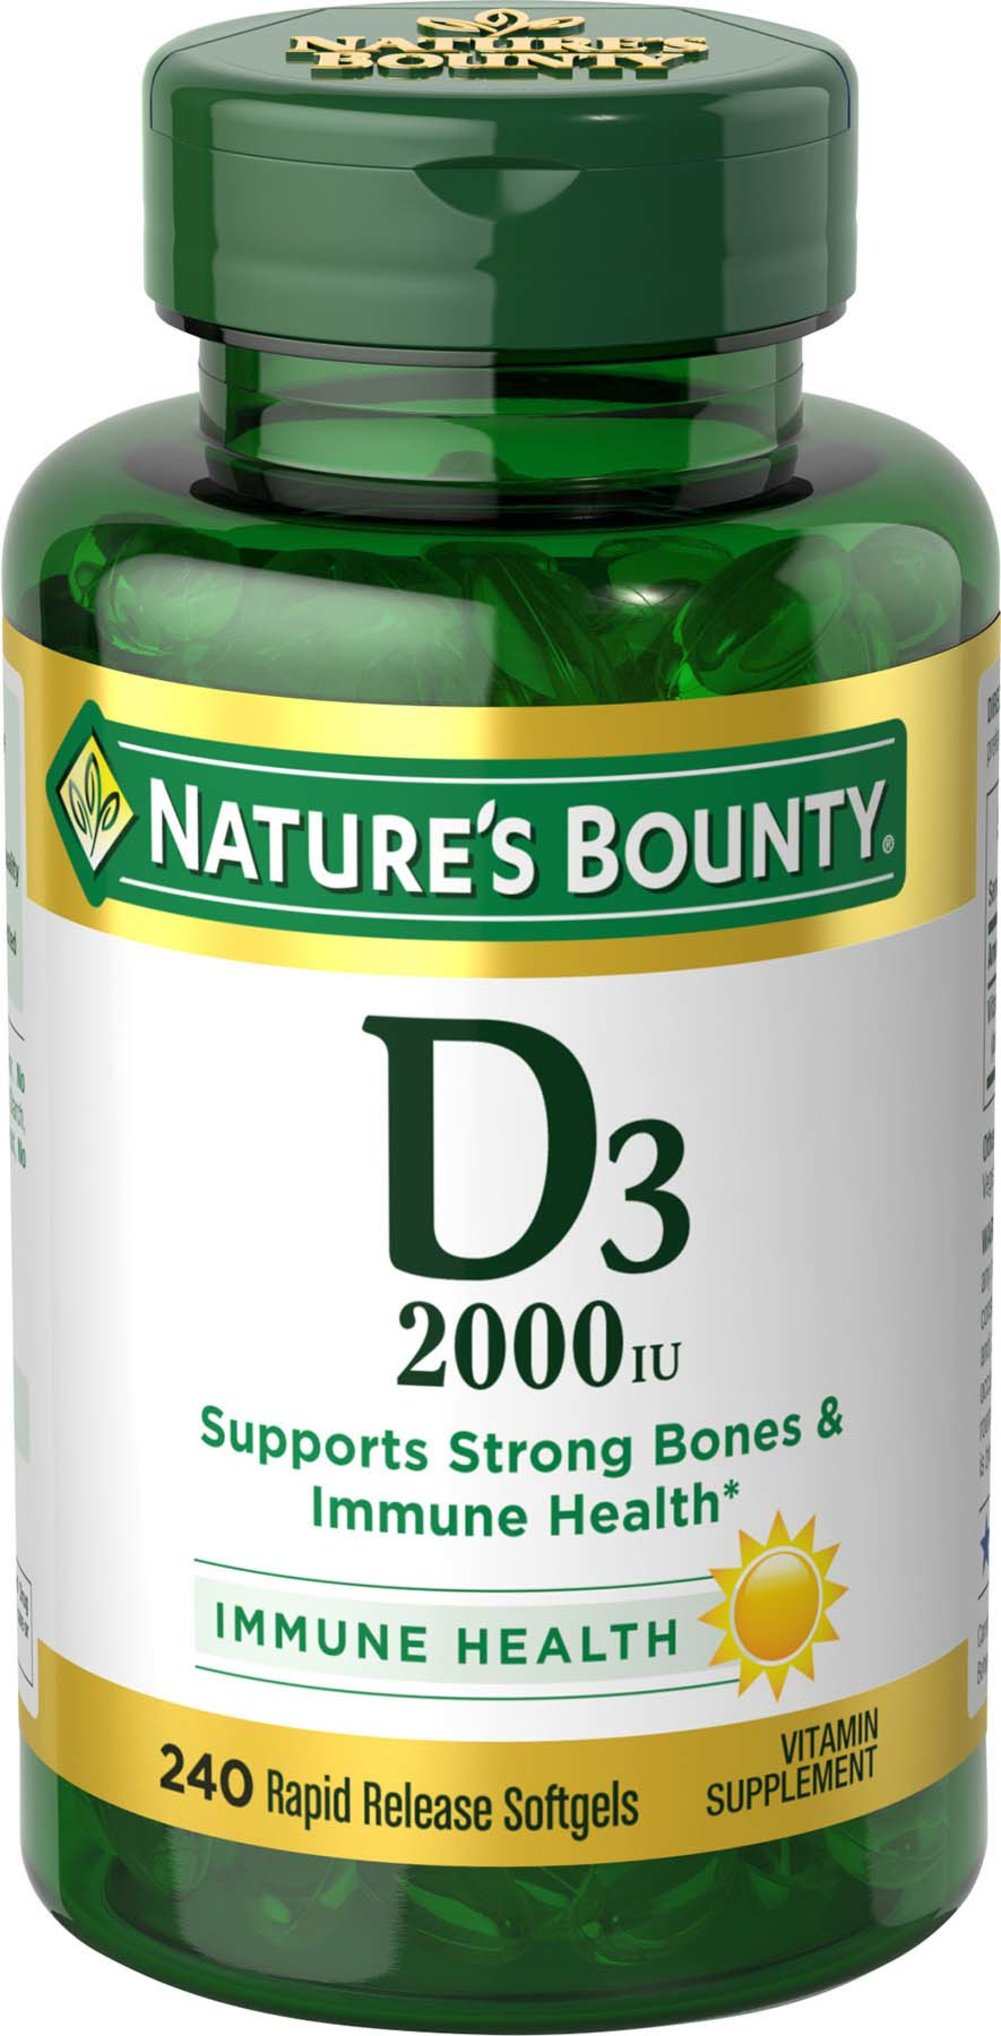 Nature's Bounty® Vitamin D 3 2000 IU